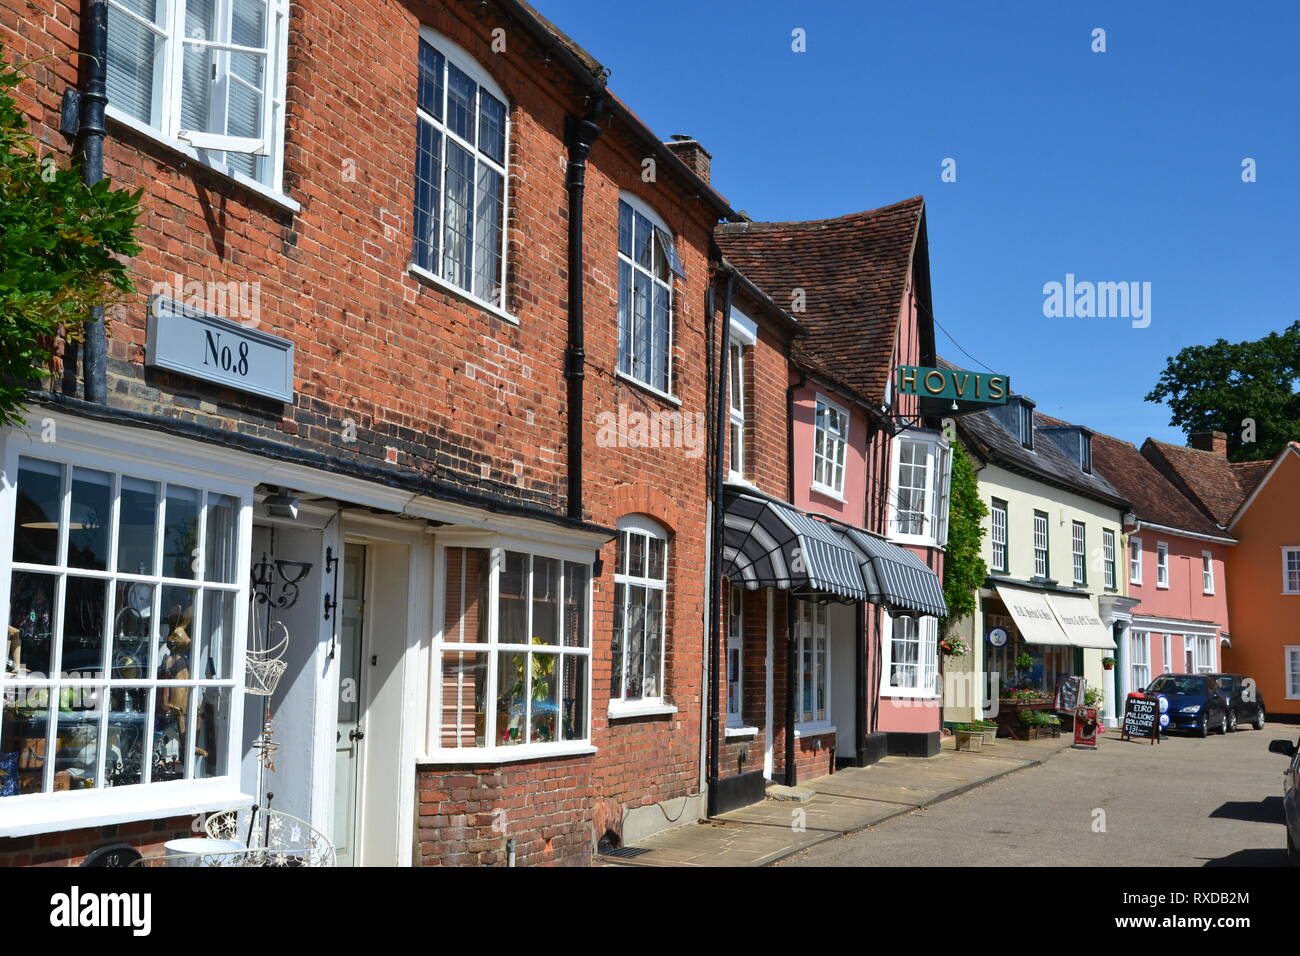 Historic shops and other buildings in Lavenham, Suffolk, UK. Sunny day. - Stock Image